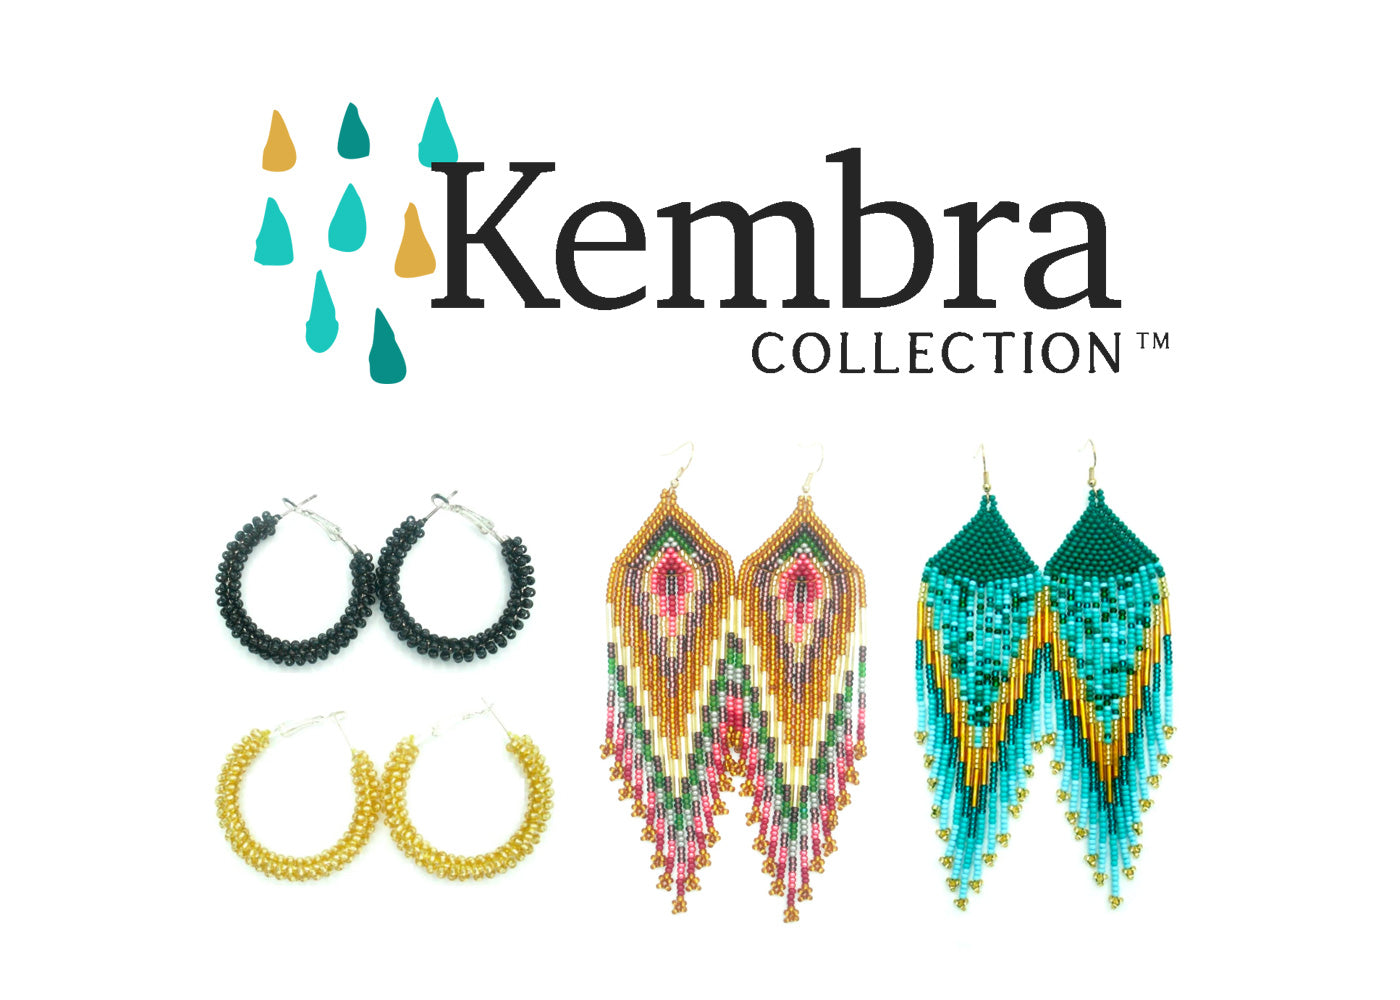 Kembra Collection™ by D'cocora